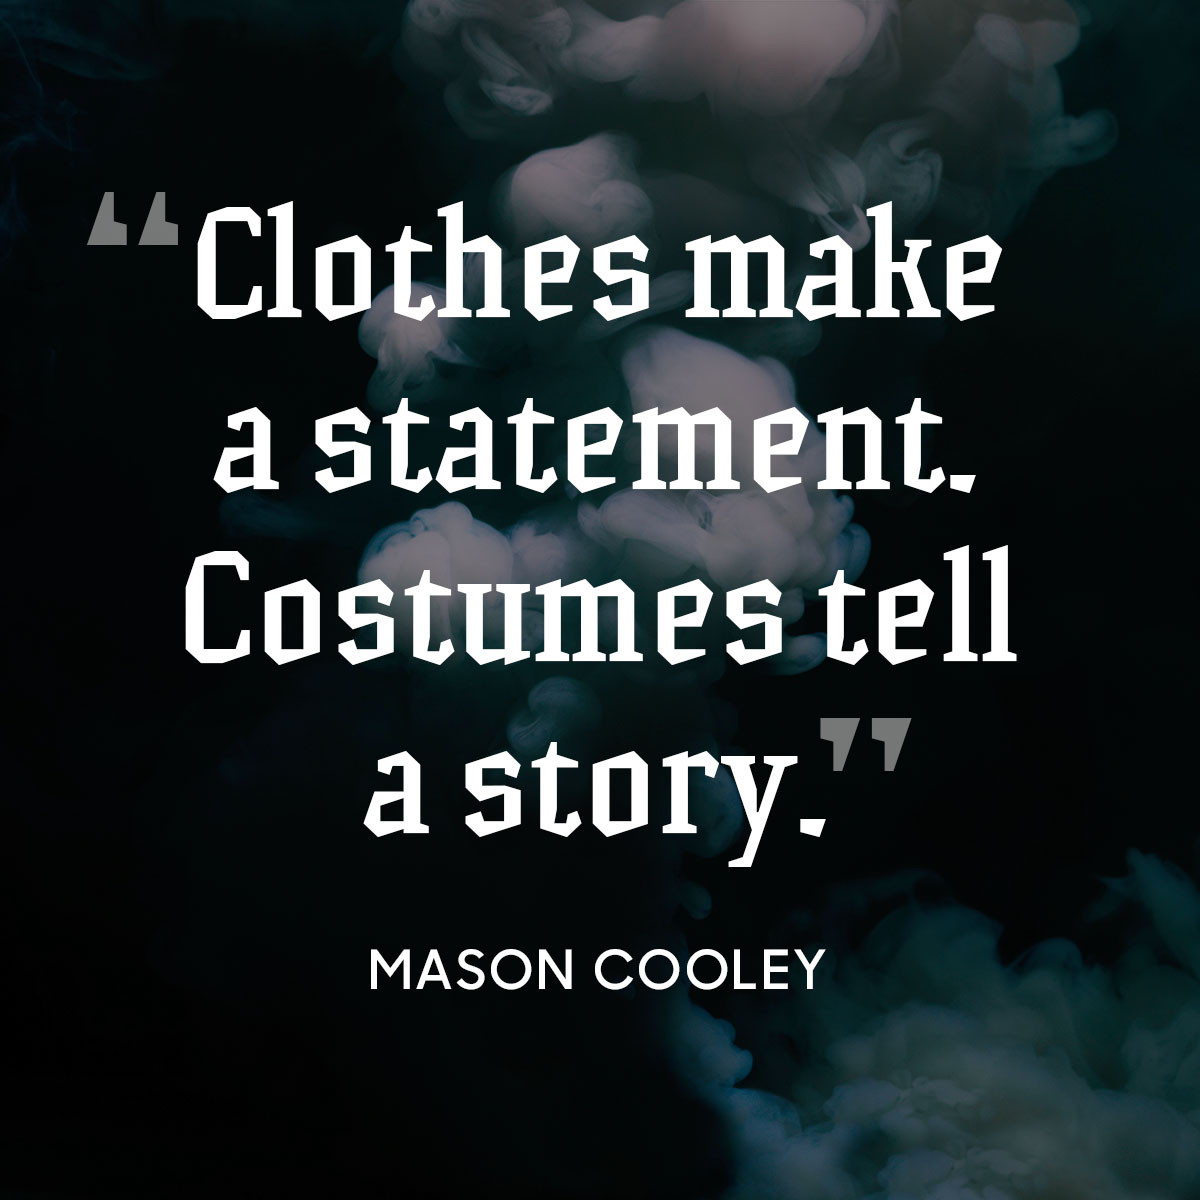 Mason Quotes Spooky Fun Halloween Day Quote  The Best Collection Of Quotes